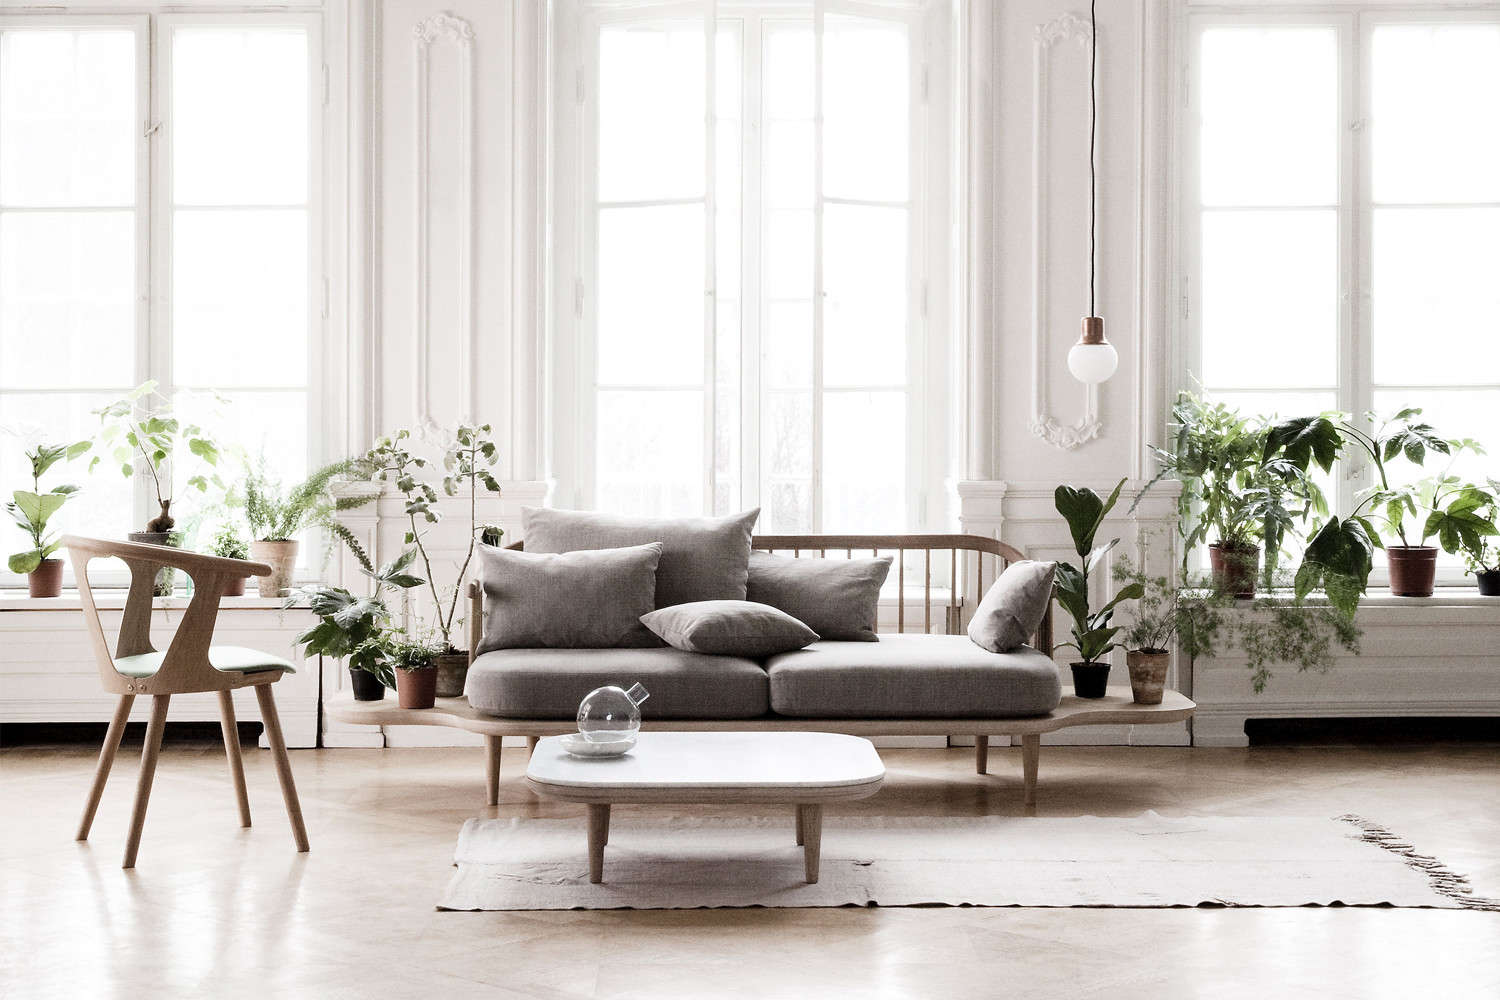 ... Space Copenhagen For U0026Tradition Has Been On Our Radar For A While Now,  So When We Came Across The Kalmar Armchair, Ottoman, And Sofa At  Anthropologie, ...